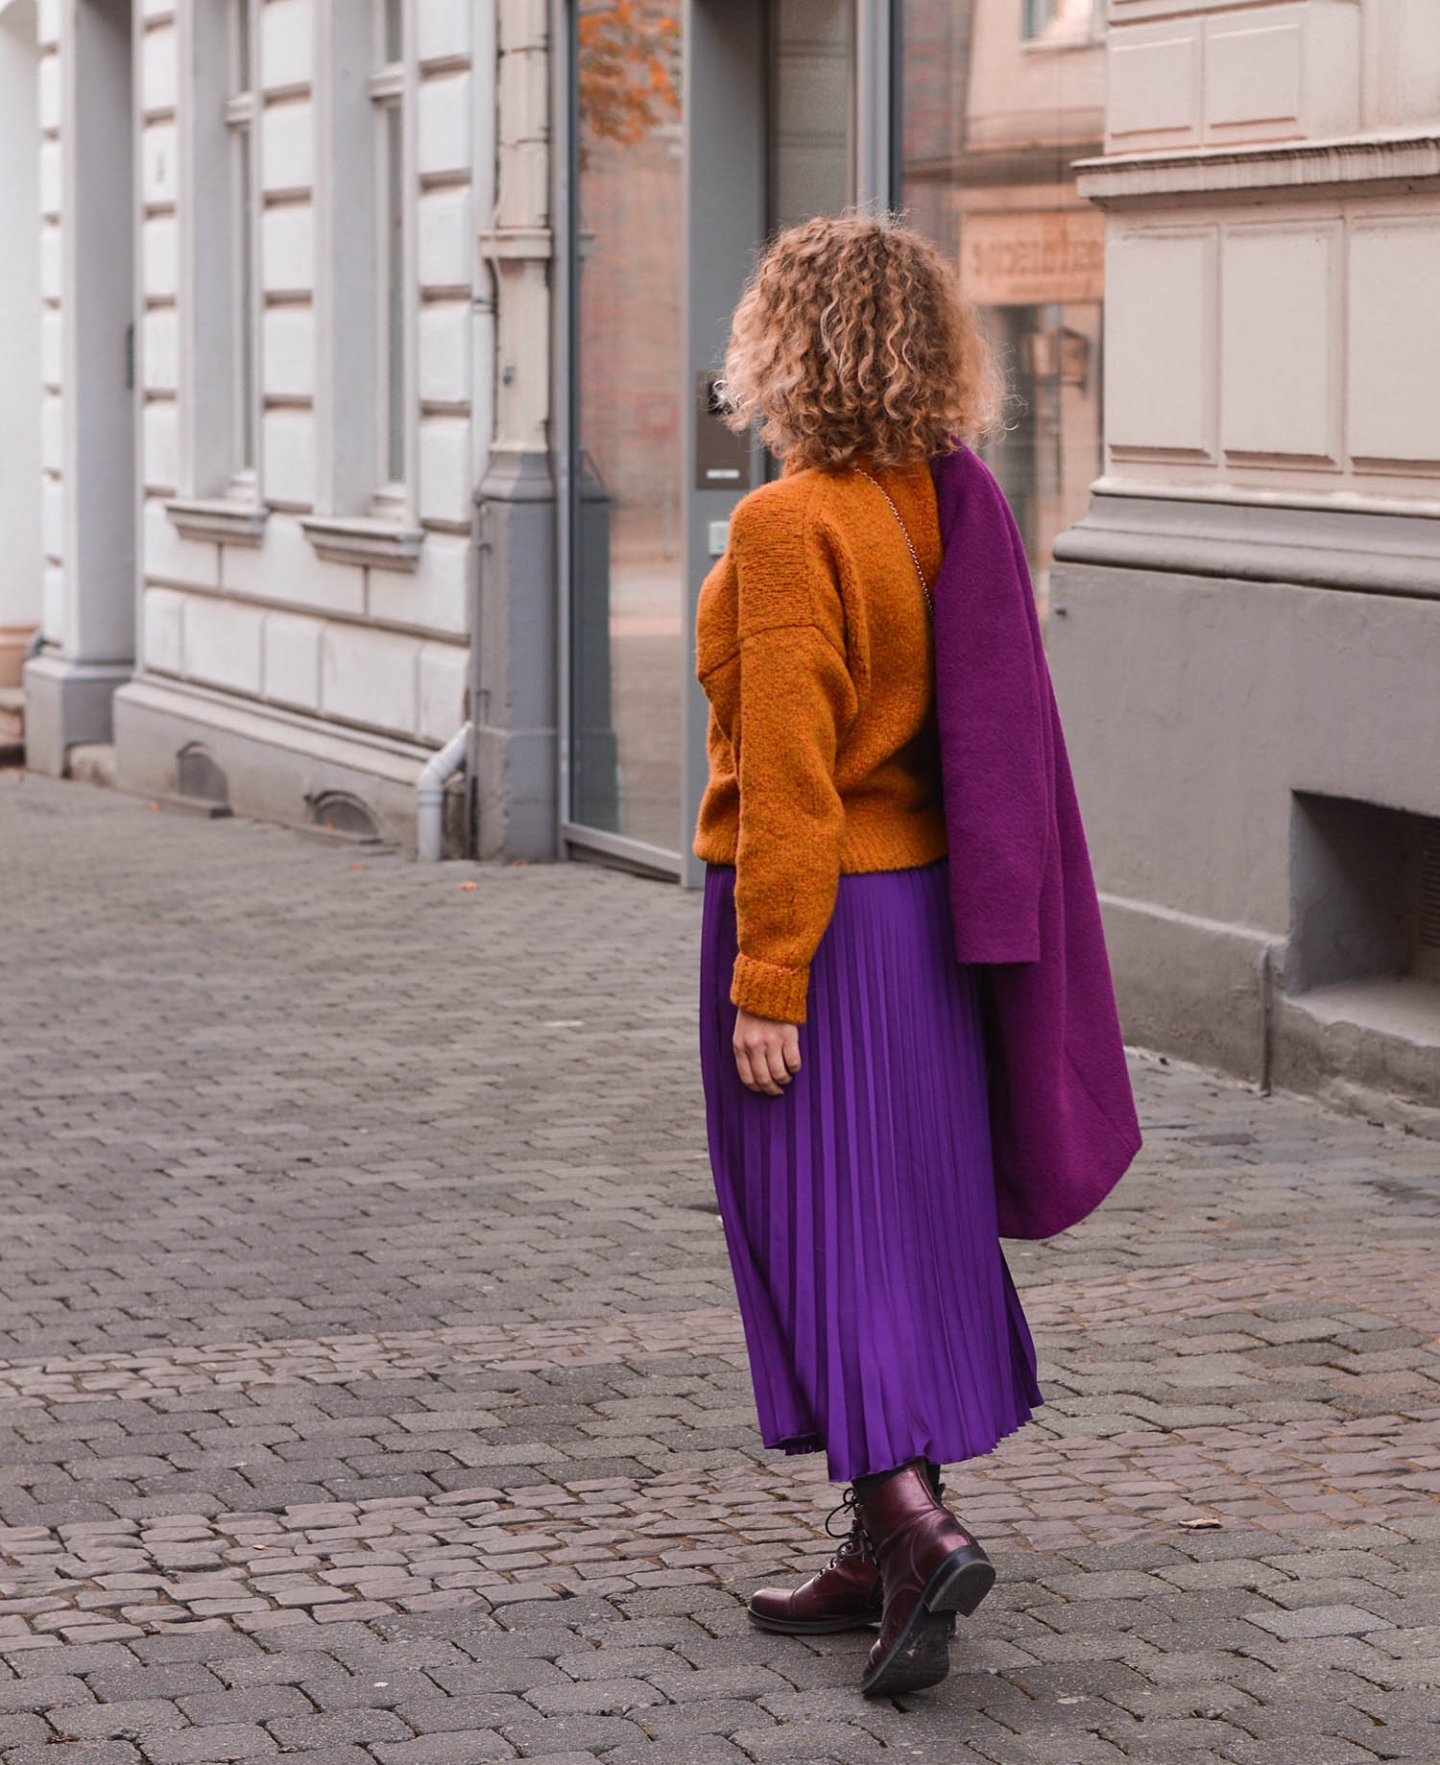 color-blocking outfit im winter